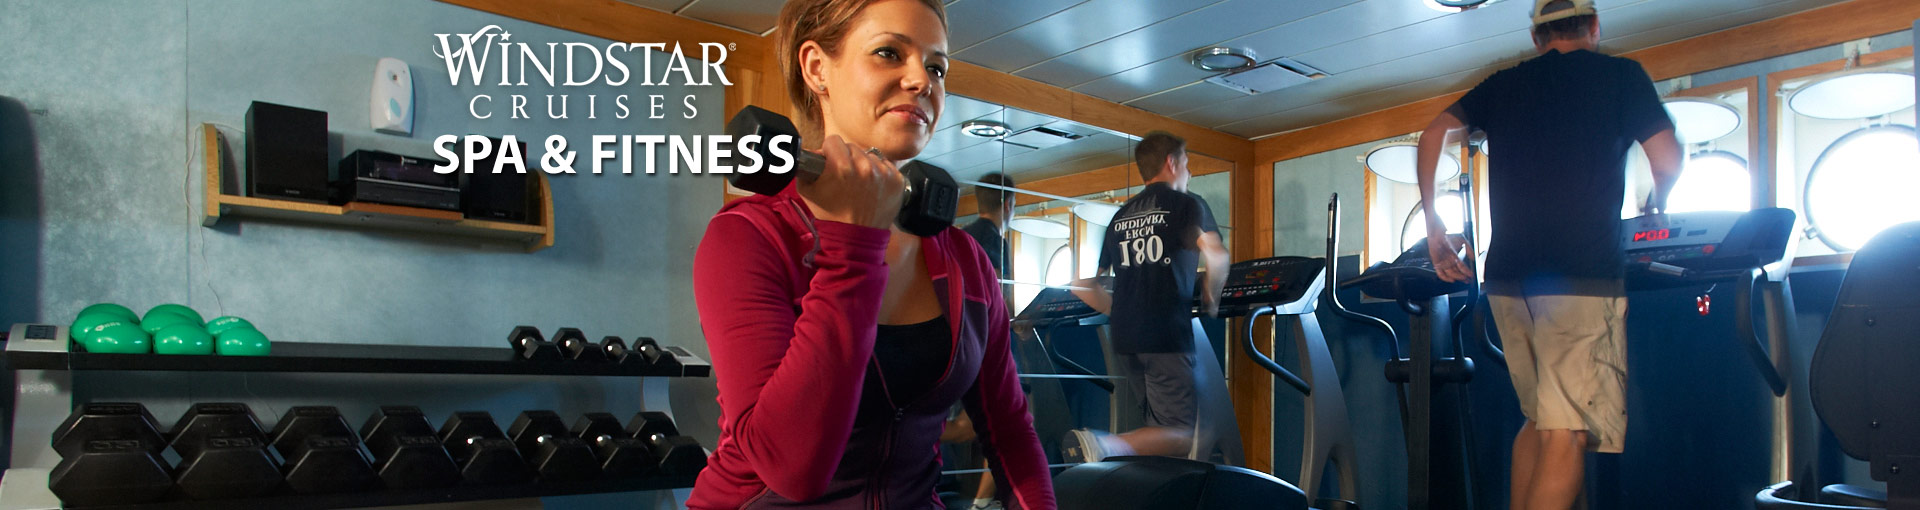 Windstar Cruises Spa & Fitness